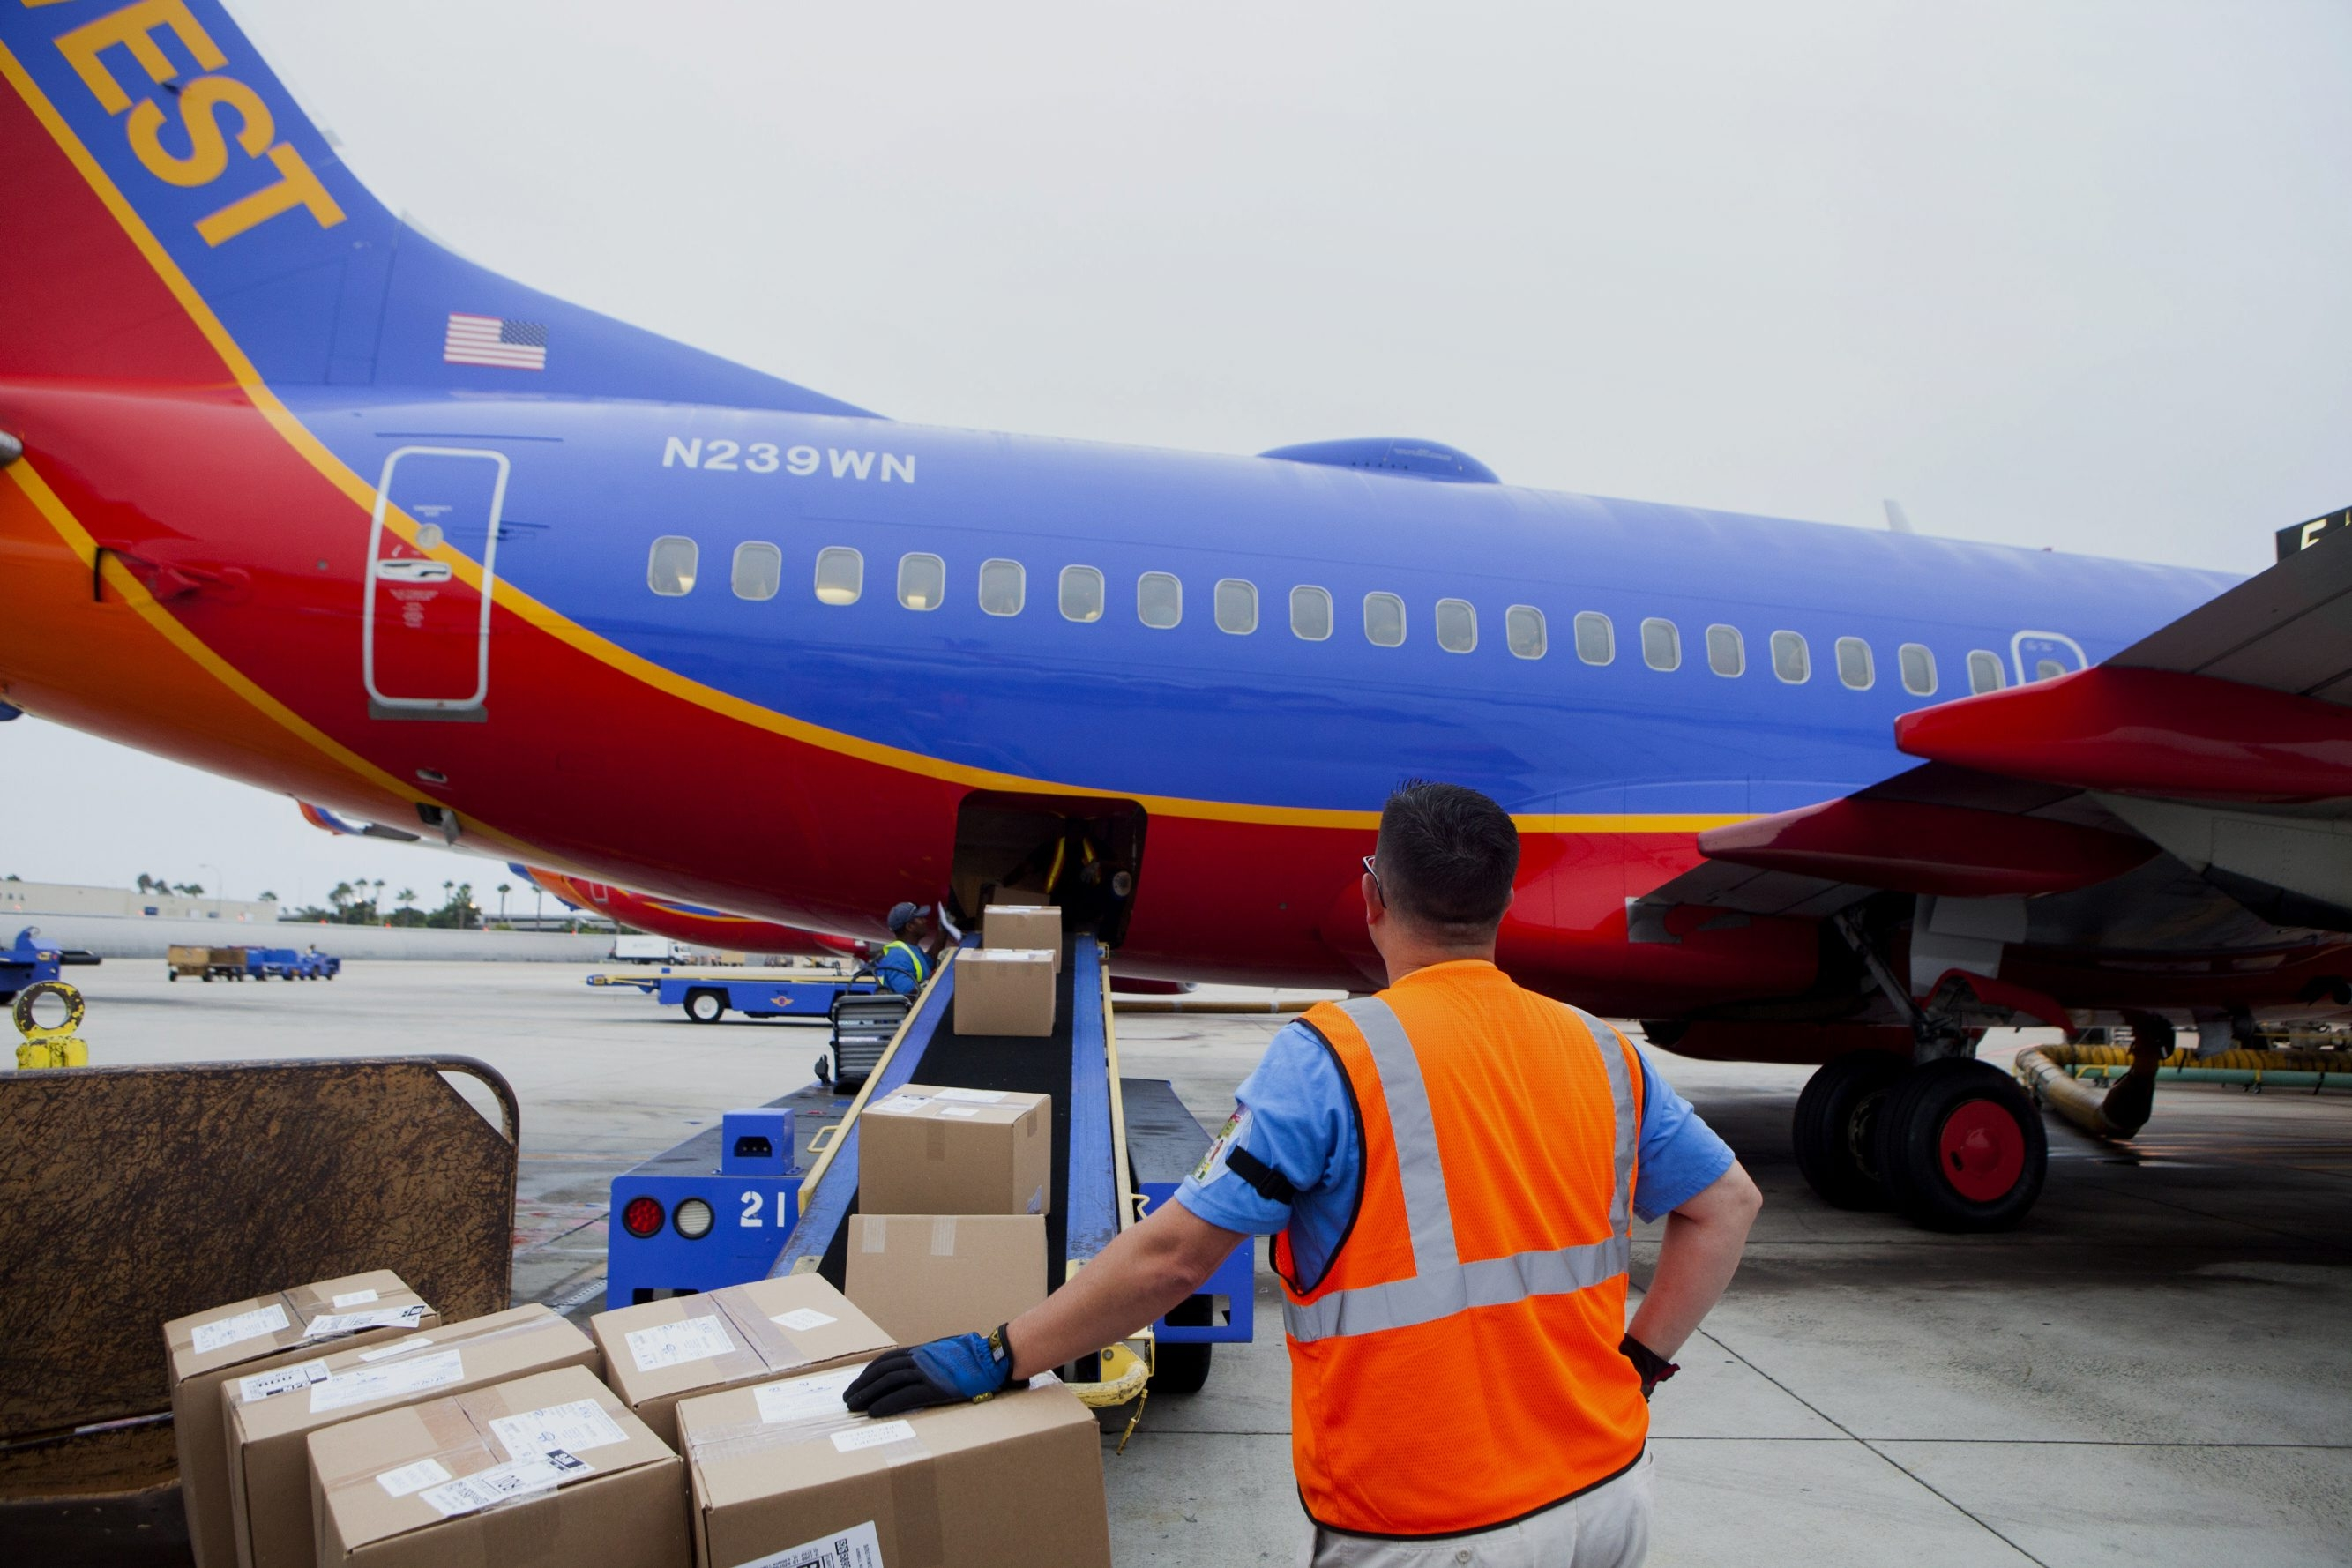 A ground crew member loads cargo onto a Southwest Airlines Co. Boeing Co. 737-7H4 airplane at San Diego International Airport in San Diego, Calif., on Sept. 19.